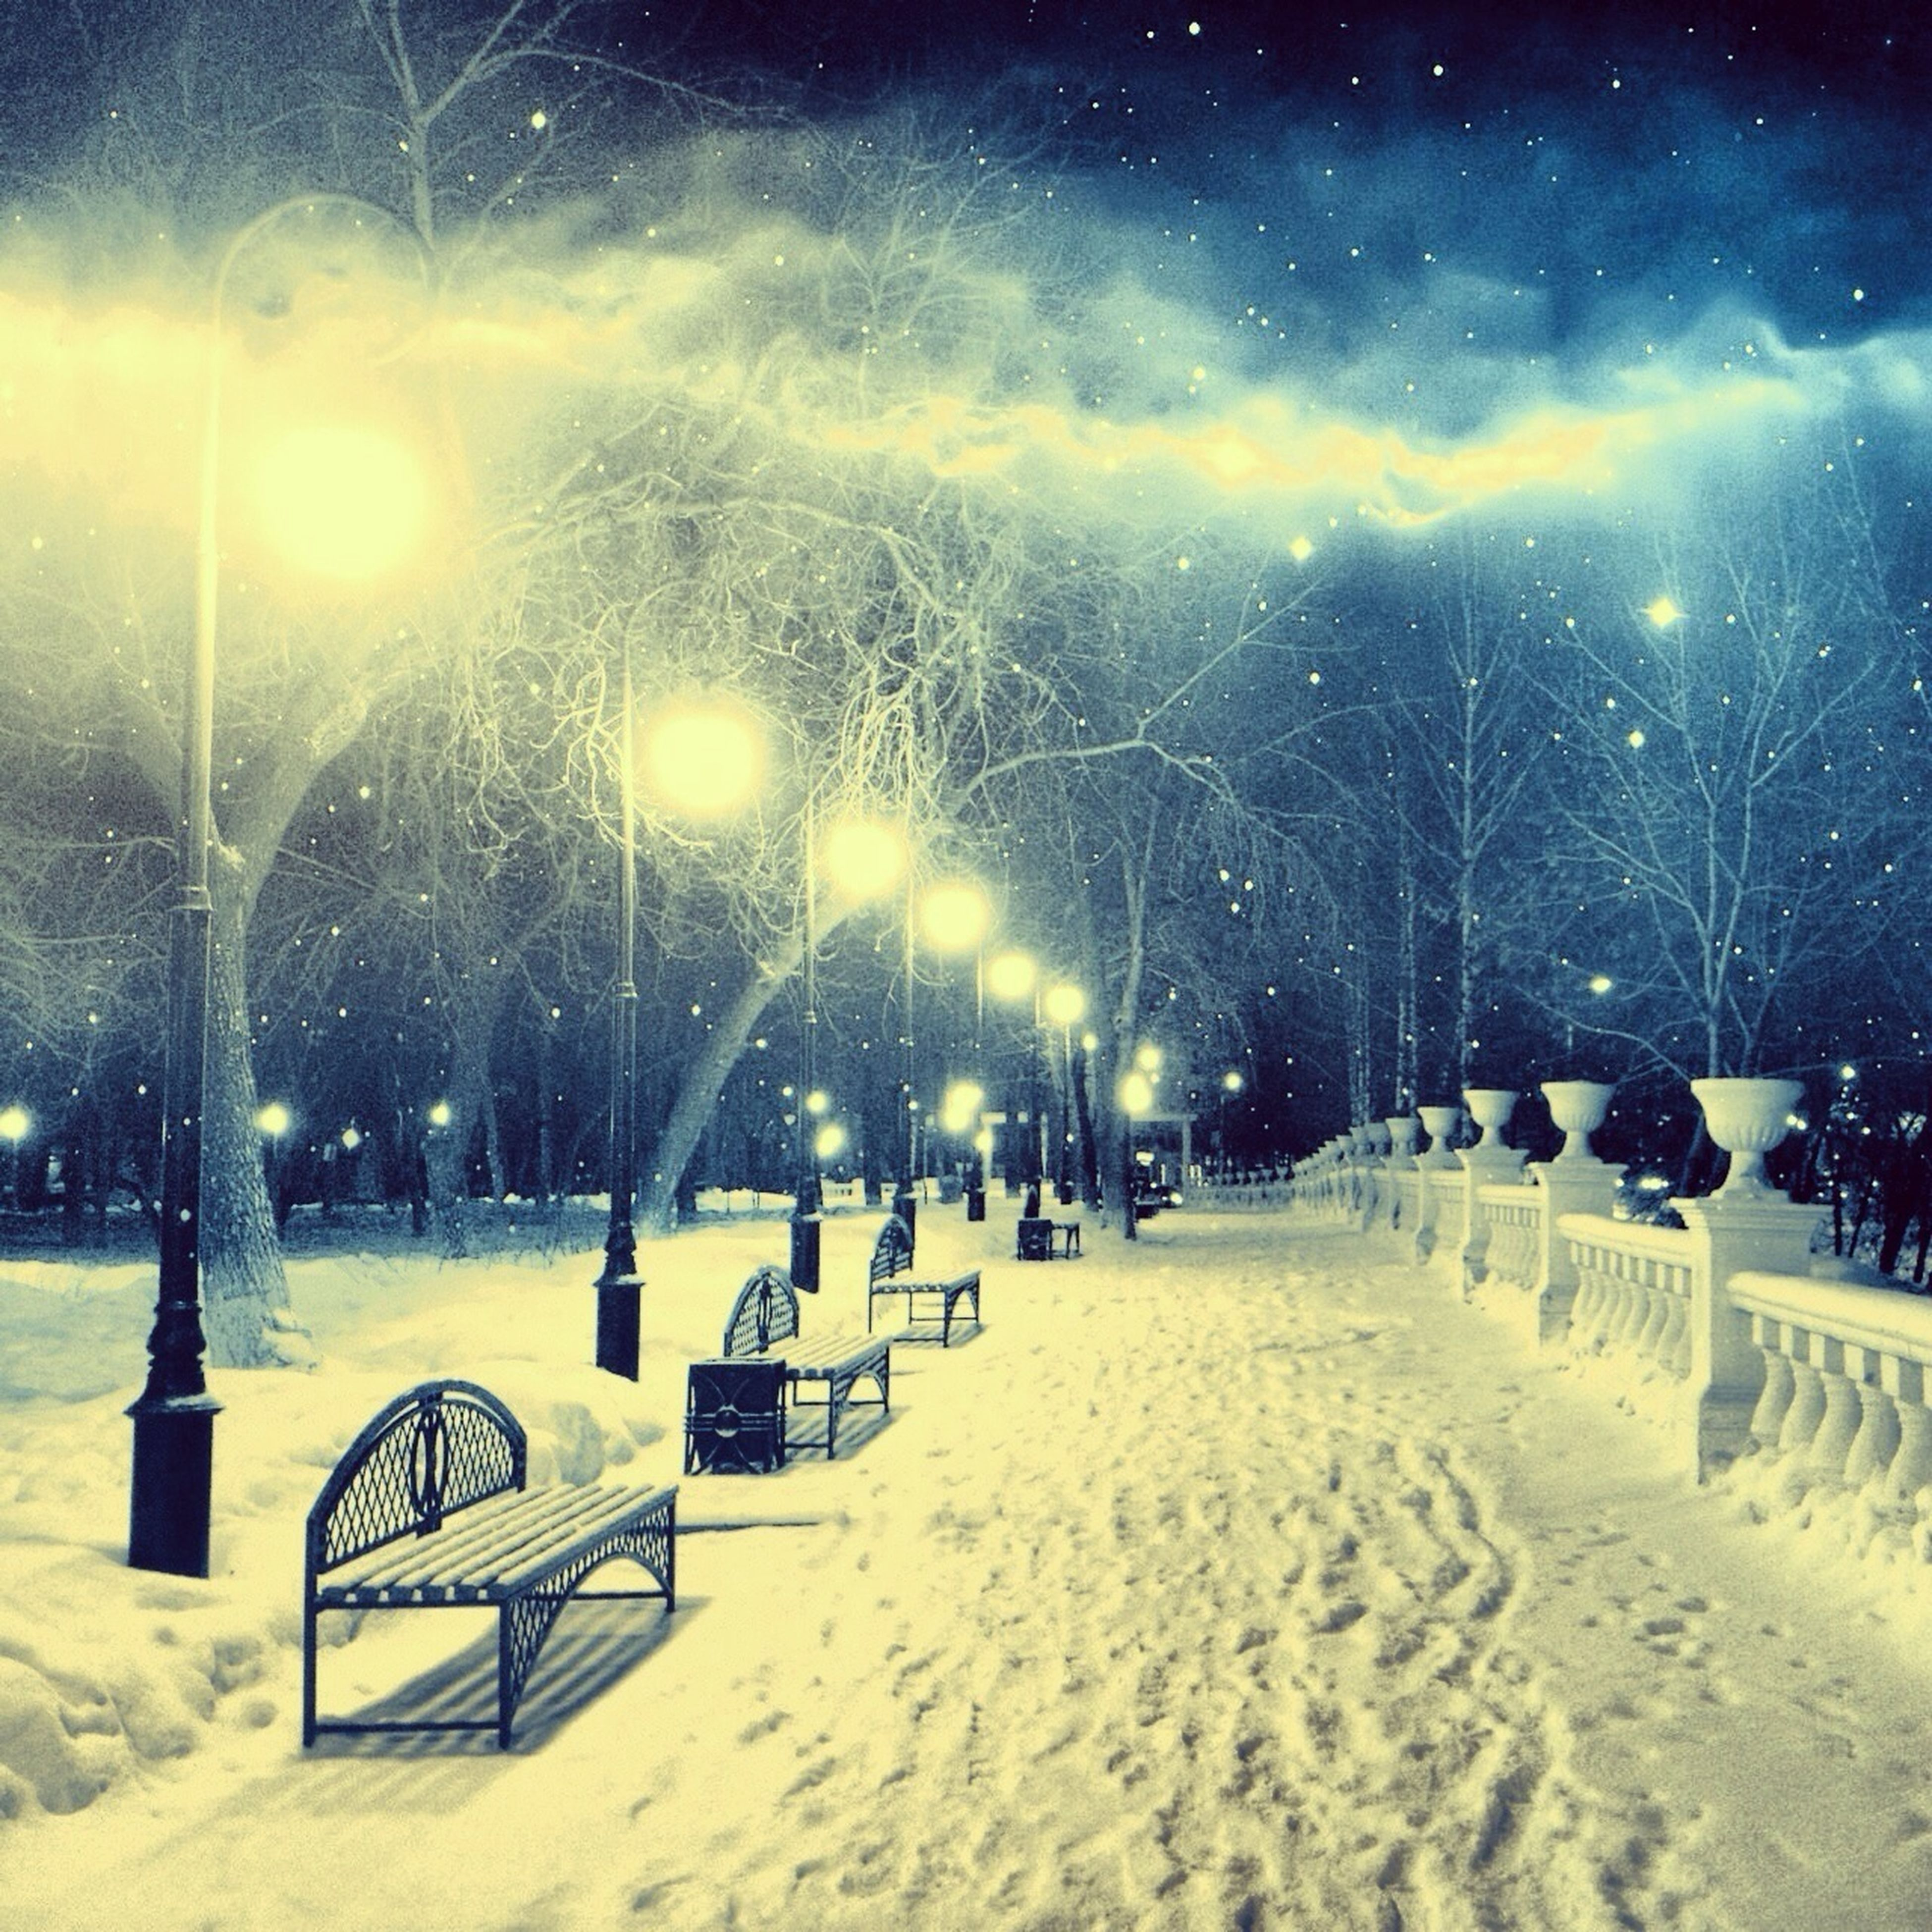 snow, winter, cold temperature, season, weather, night, illuminated, tree, covering, street light, landscape, leisure activity, nature, lighting equipment, large group of people, lifestyles, field, tranquility, white color